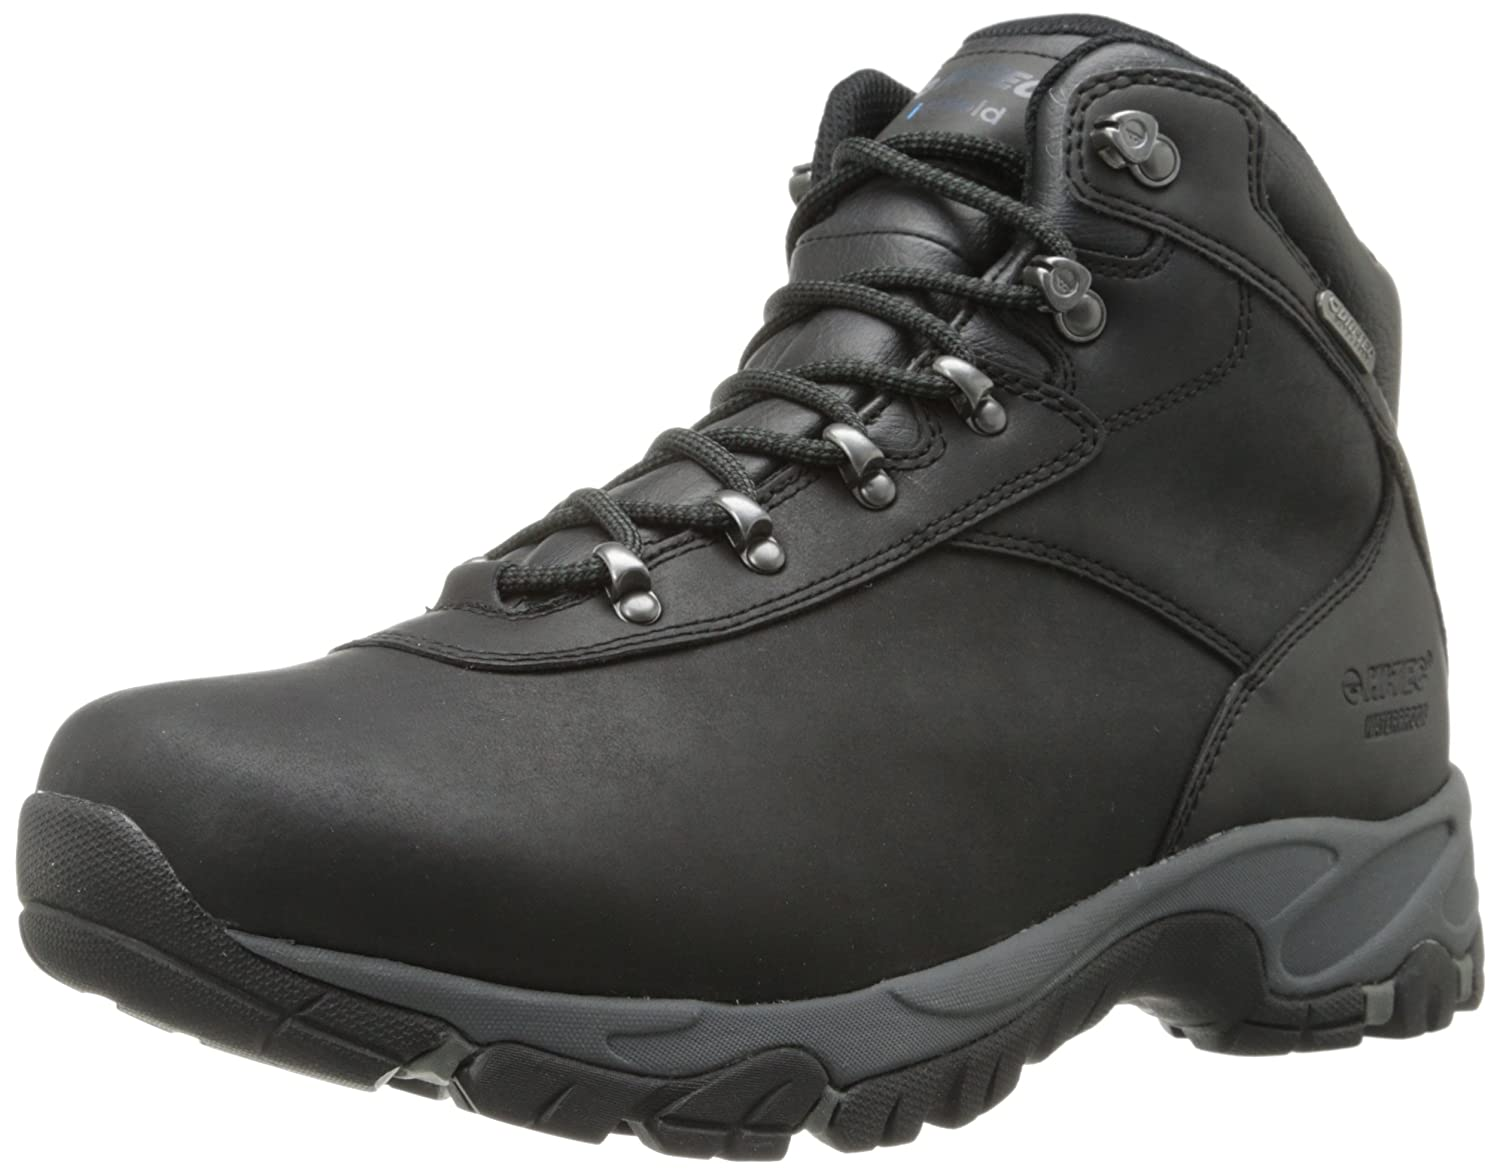 Hi-Tec Men's Altitude V I Waterproof Hiking Boot ALTITUDE V I WP-M